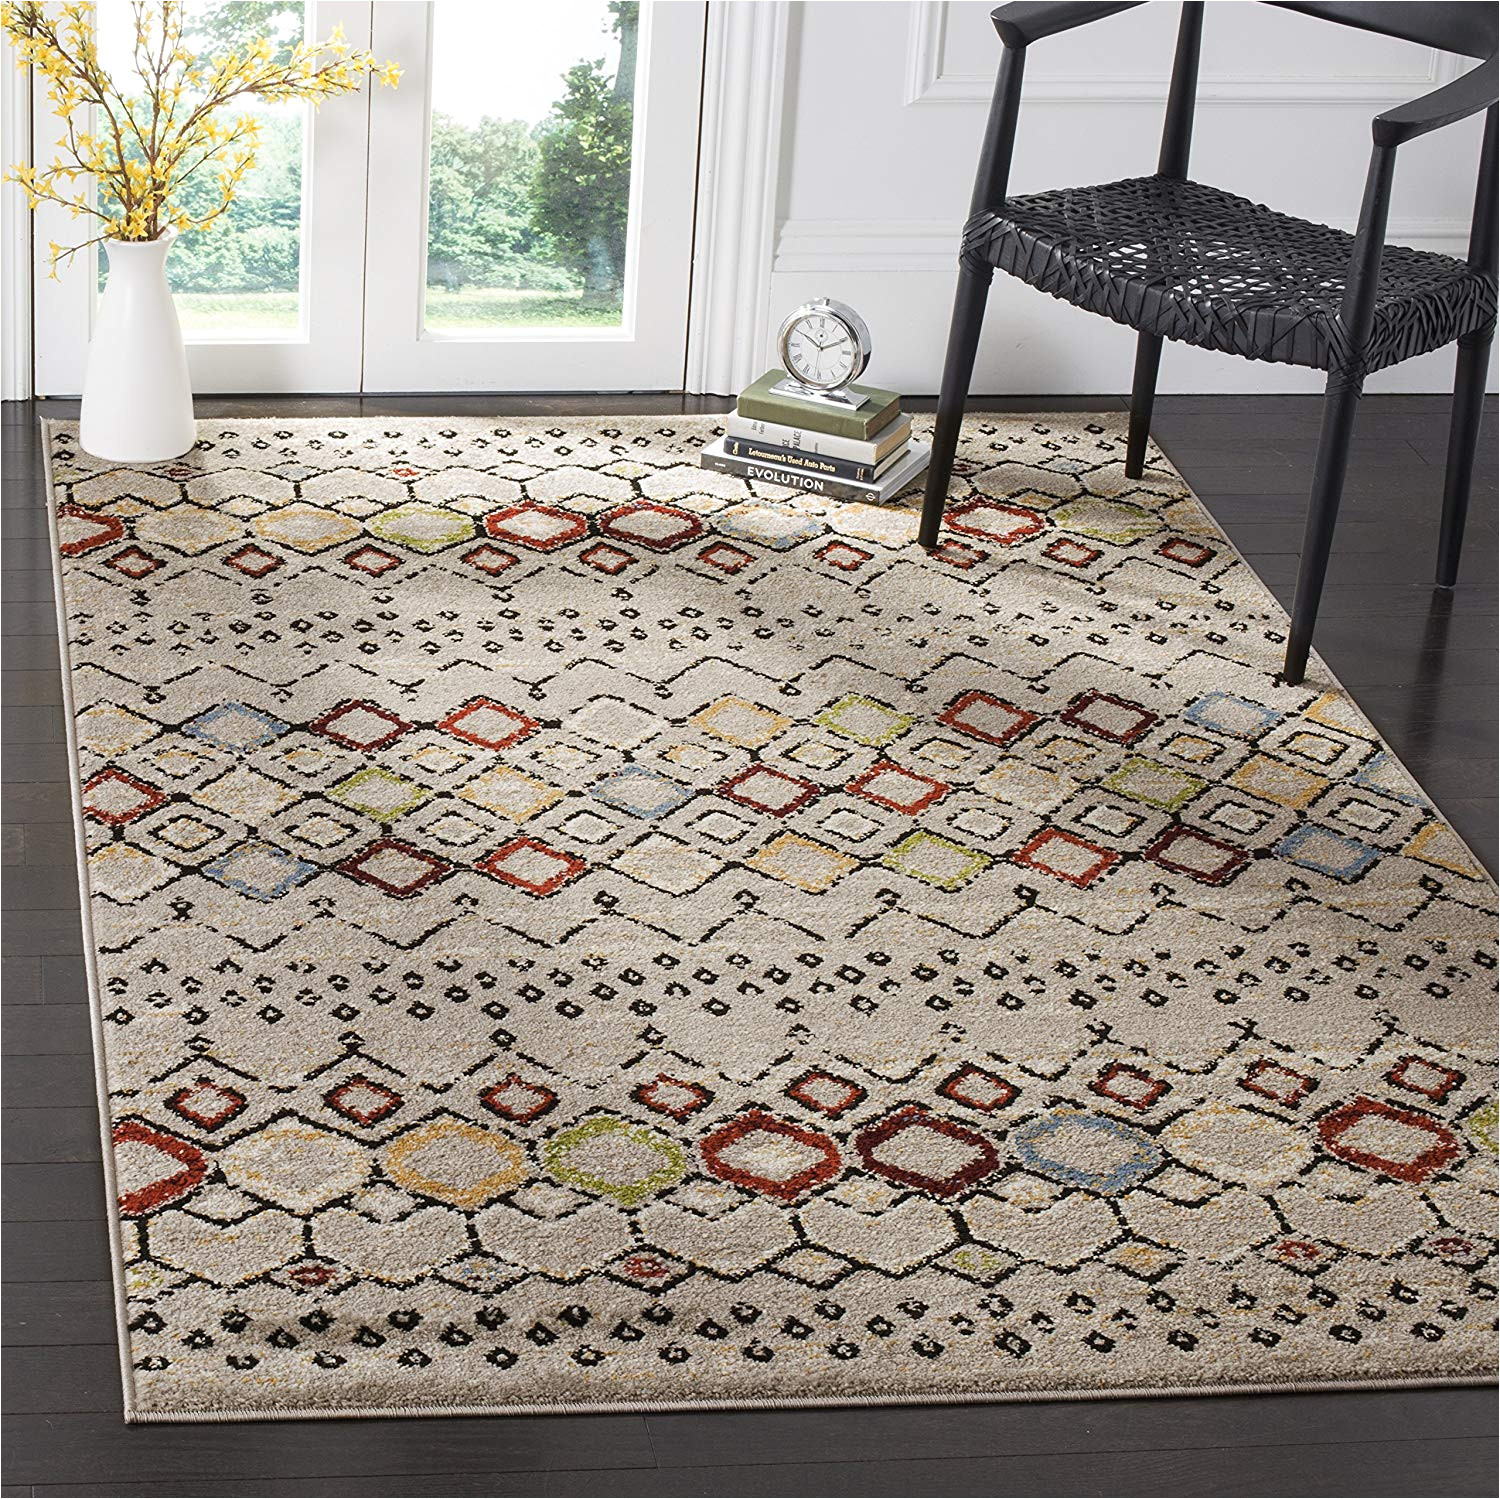 amazon com safavieh amsterdam collection ams108g southwestern bohemian light grey and multi area rug 10 x 14 kitchen dining